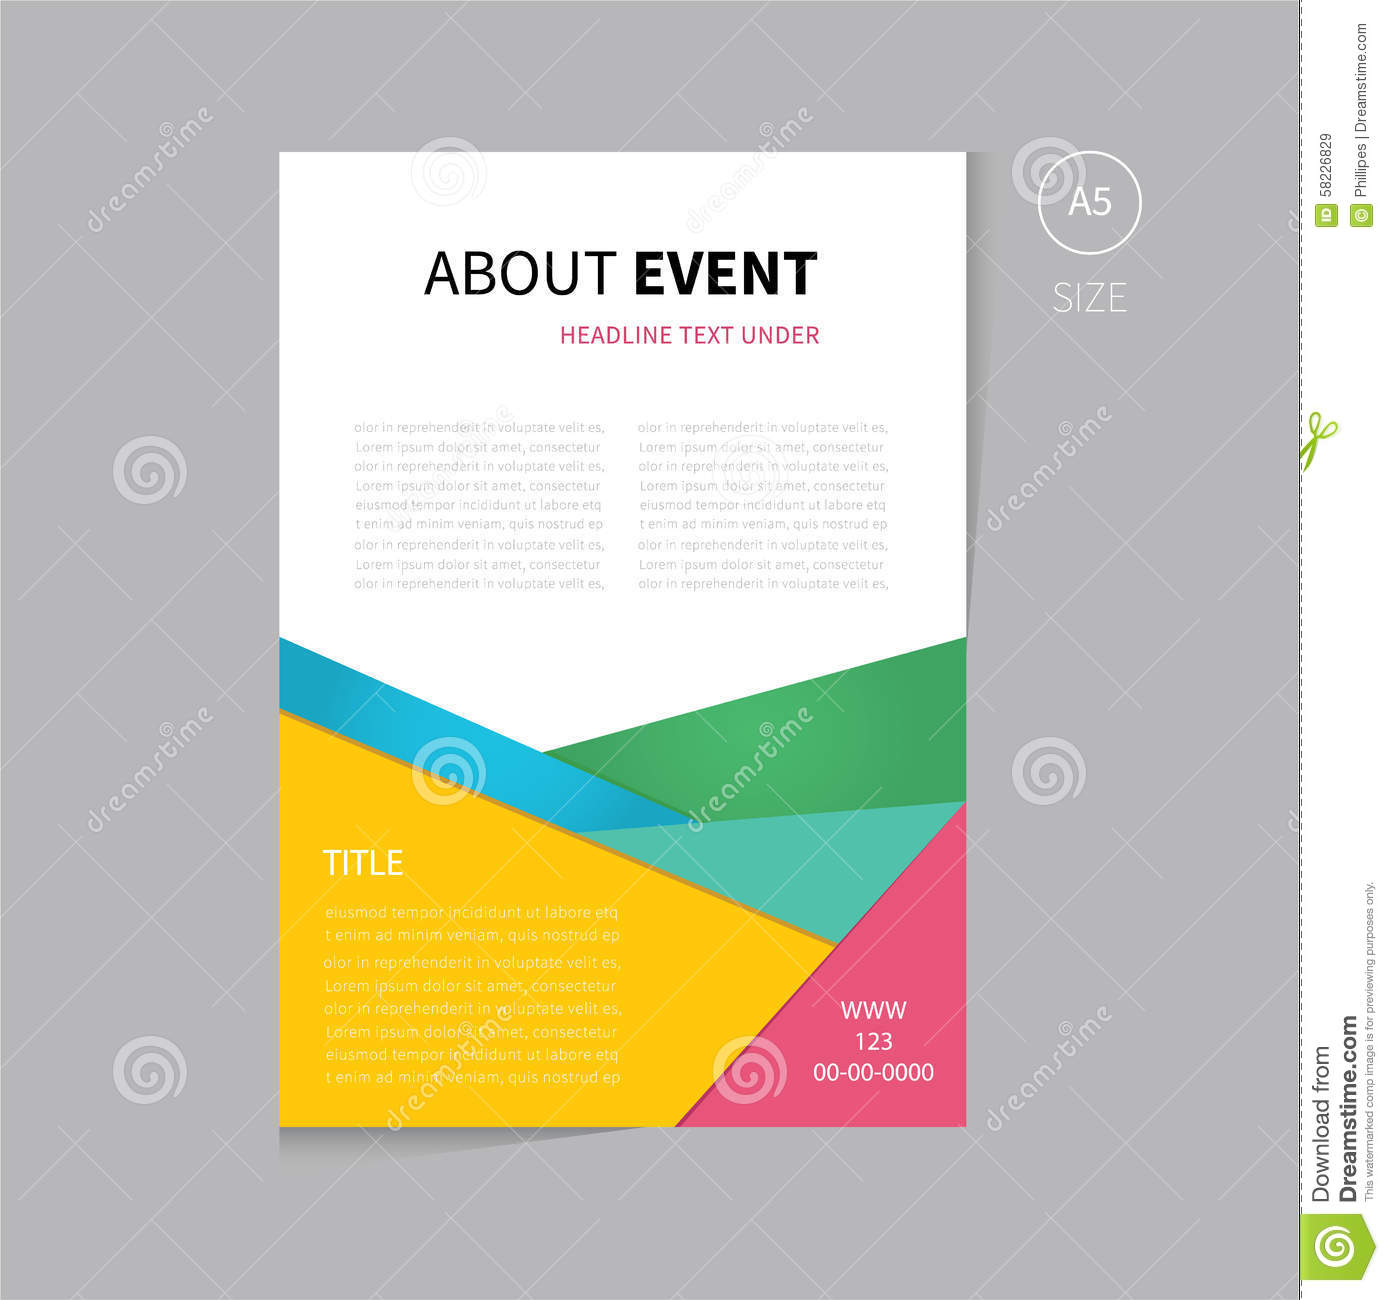 event brochure template - vector brochure flyer template design a5 size stock vector